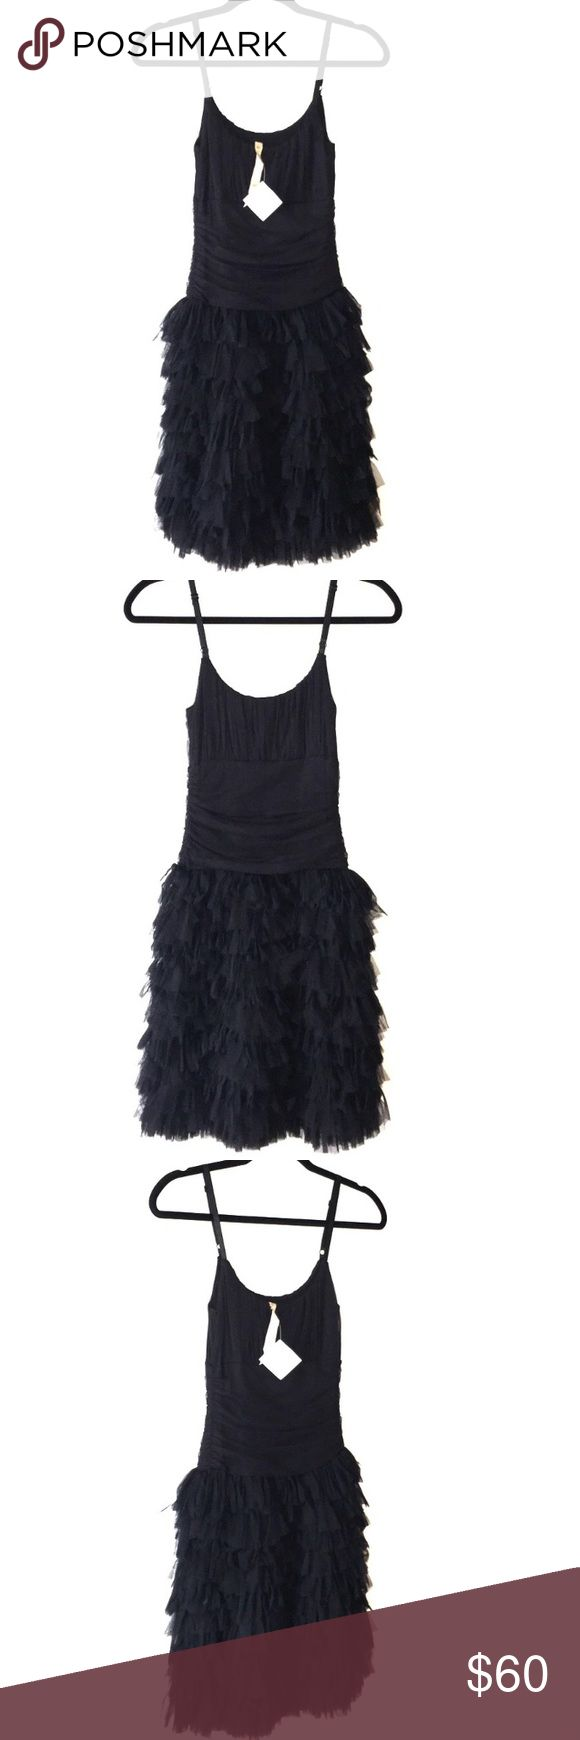 NWT Bailey 44 ruffle style little black dress Brand new with tags, size 2. This is a beautiful flawless dress that I bought and didn't end up wearing! Brand is Bailey 44 from Nordstrom Bailey 44 Dresses Mini